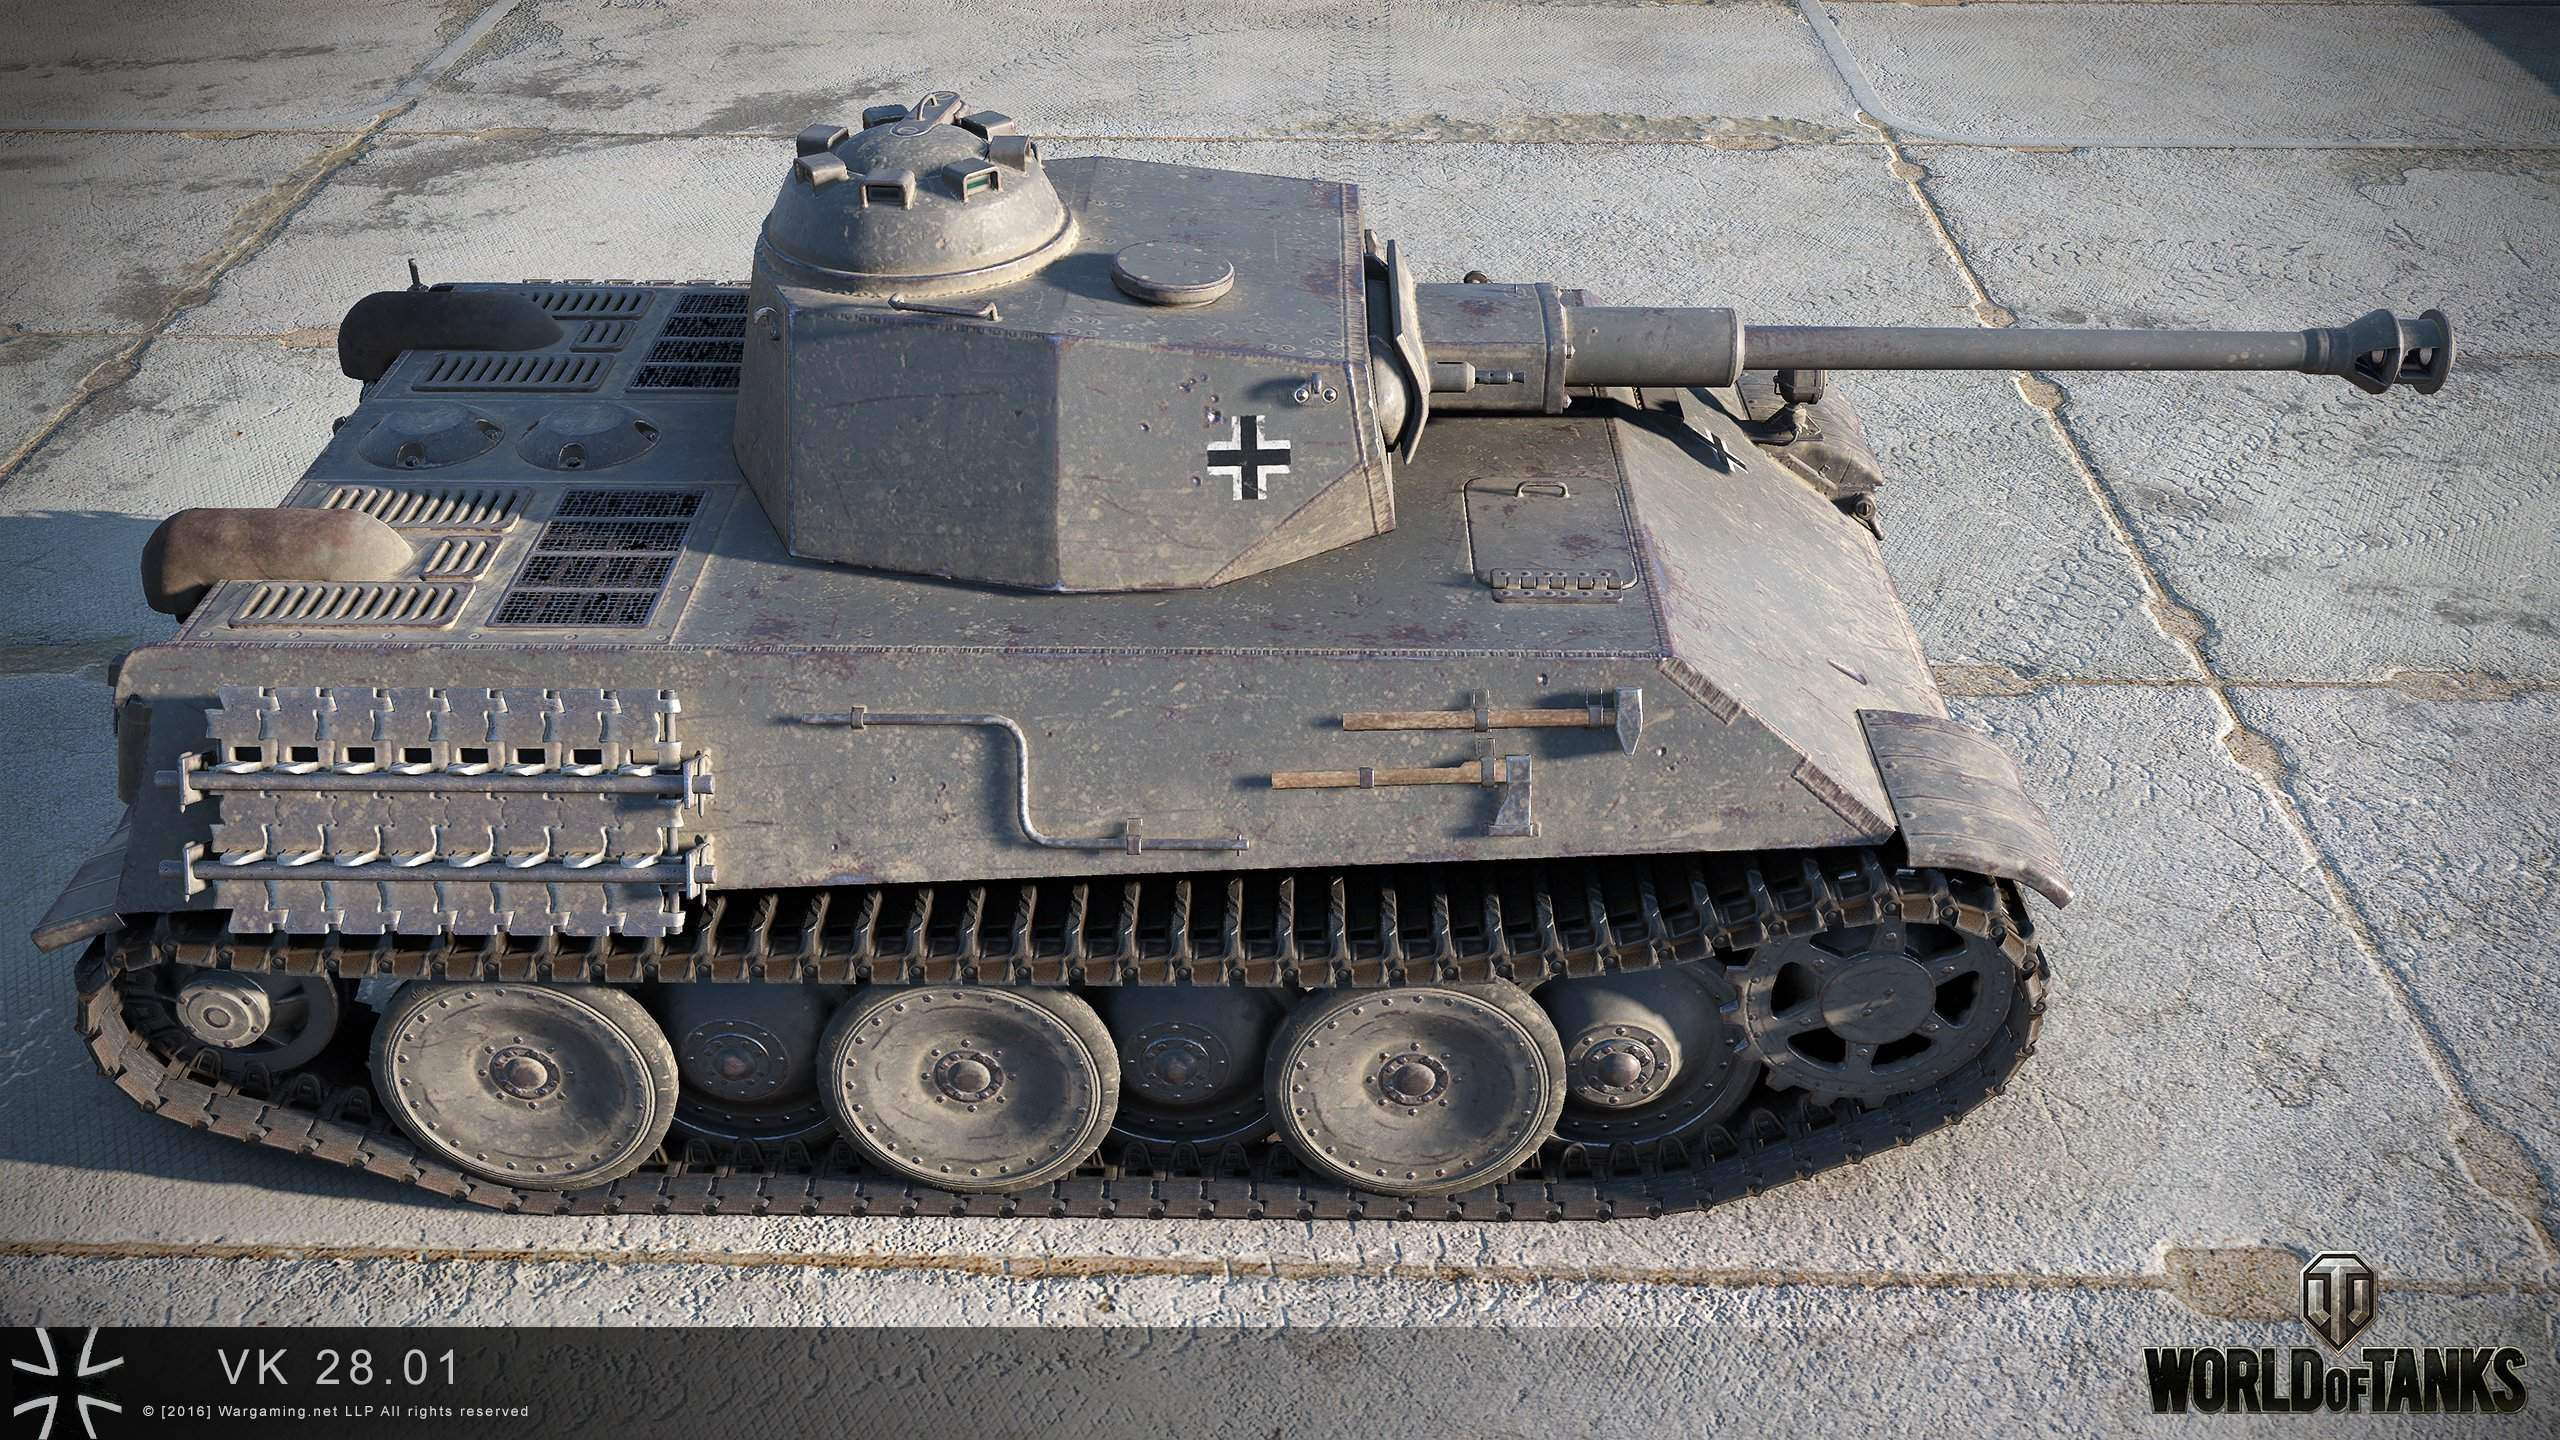 vk 28 01 matchmaking Hey everyone, i was recently given the vk 4503 heavy tank by wgna this post was submitted on 01 jun 2016 vk 4503 tanksgg comparison tier vii gold value: 7,700 matchmaking: standard germany: pzkpfw 38 (t) na, pz kpfw ii luchs, vk 1602 leopard, vk 2801, aufklärungspanzer.